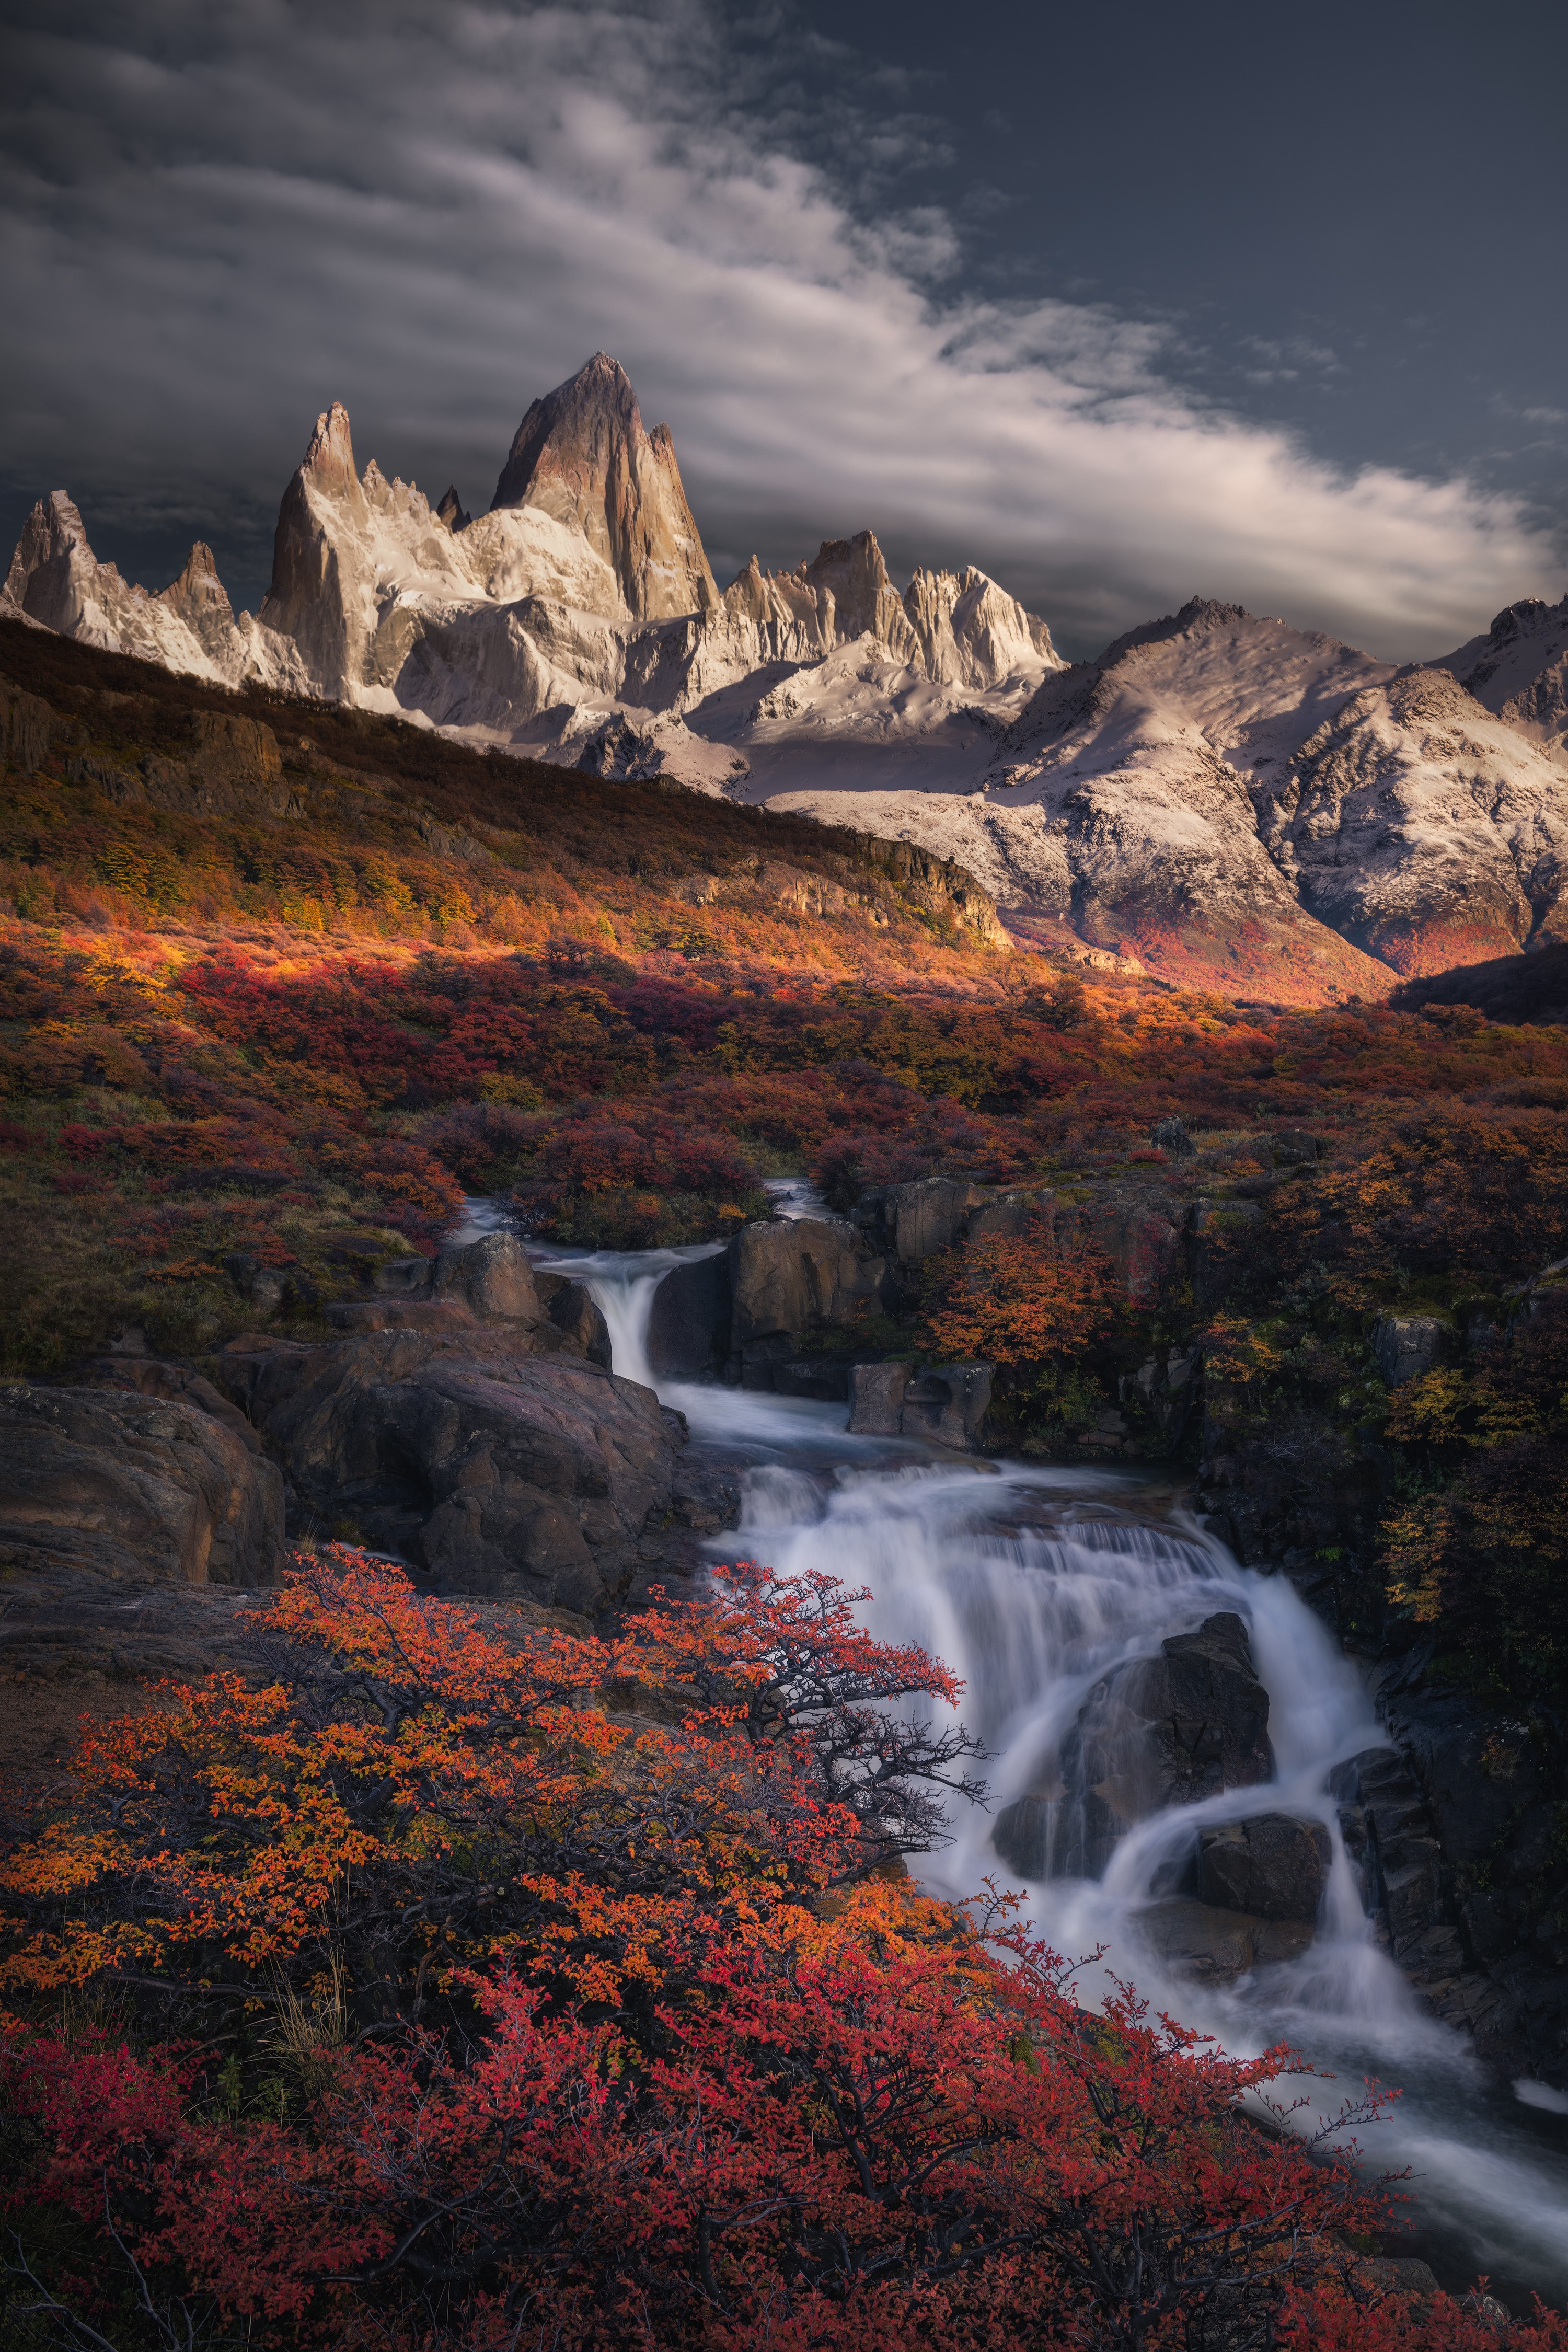 A photograph of a creek and waterfalls running downhill among fall leaves, with a mountain range in the background